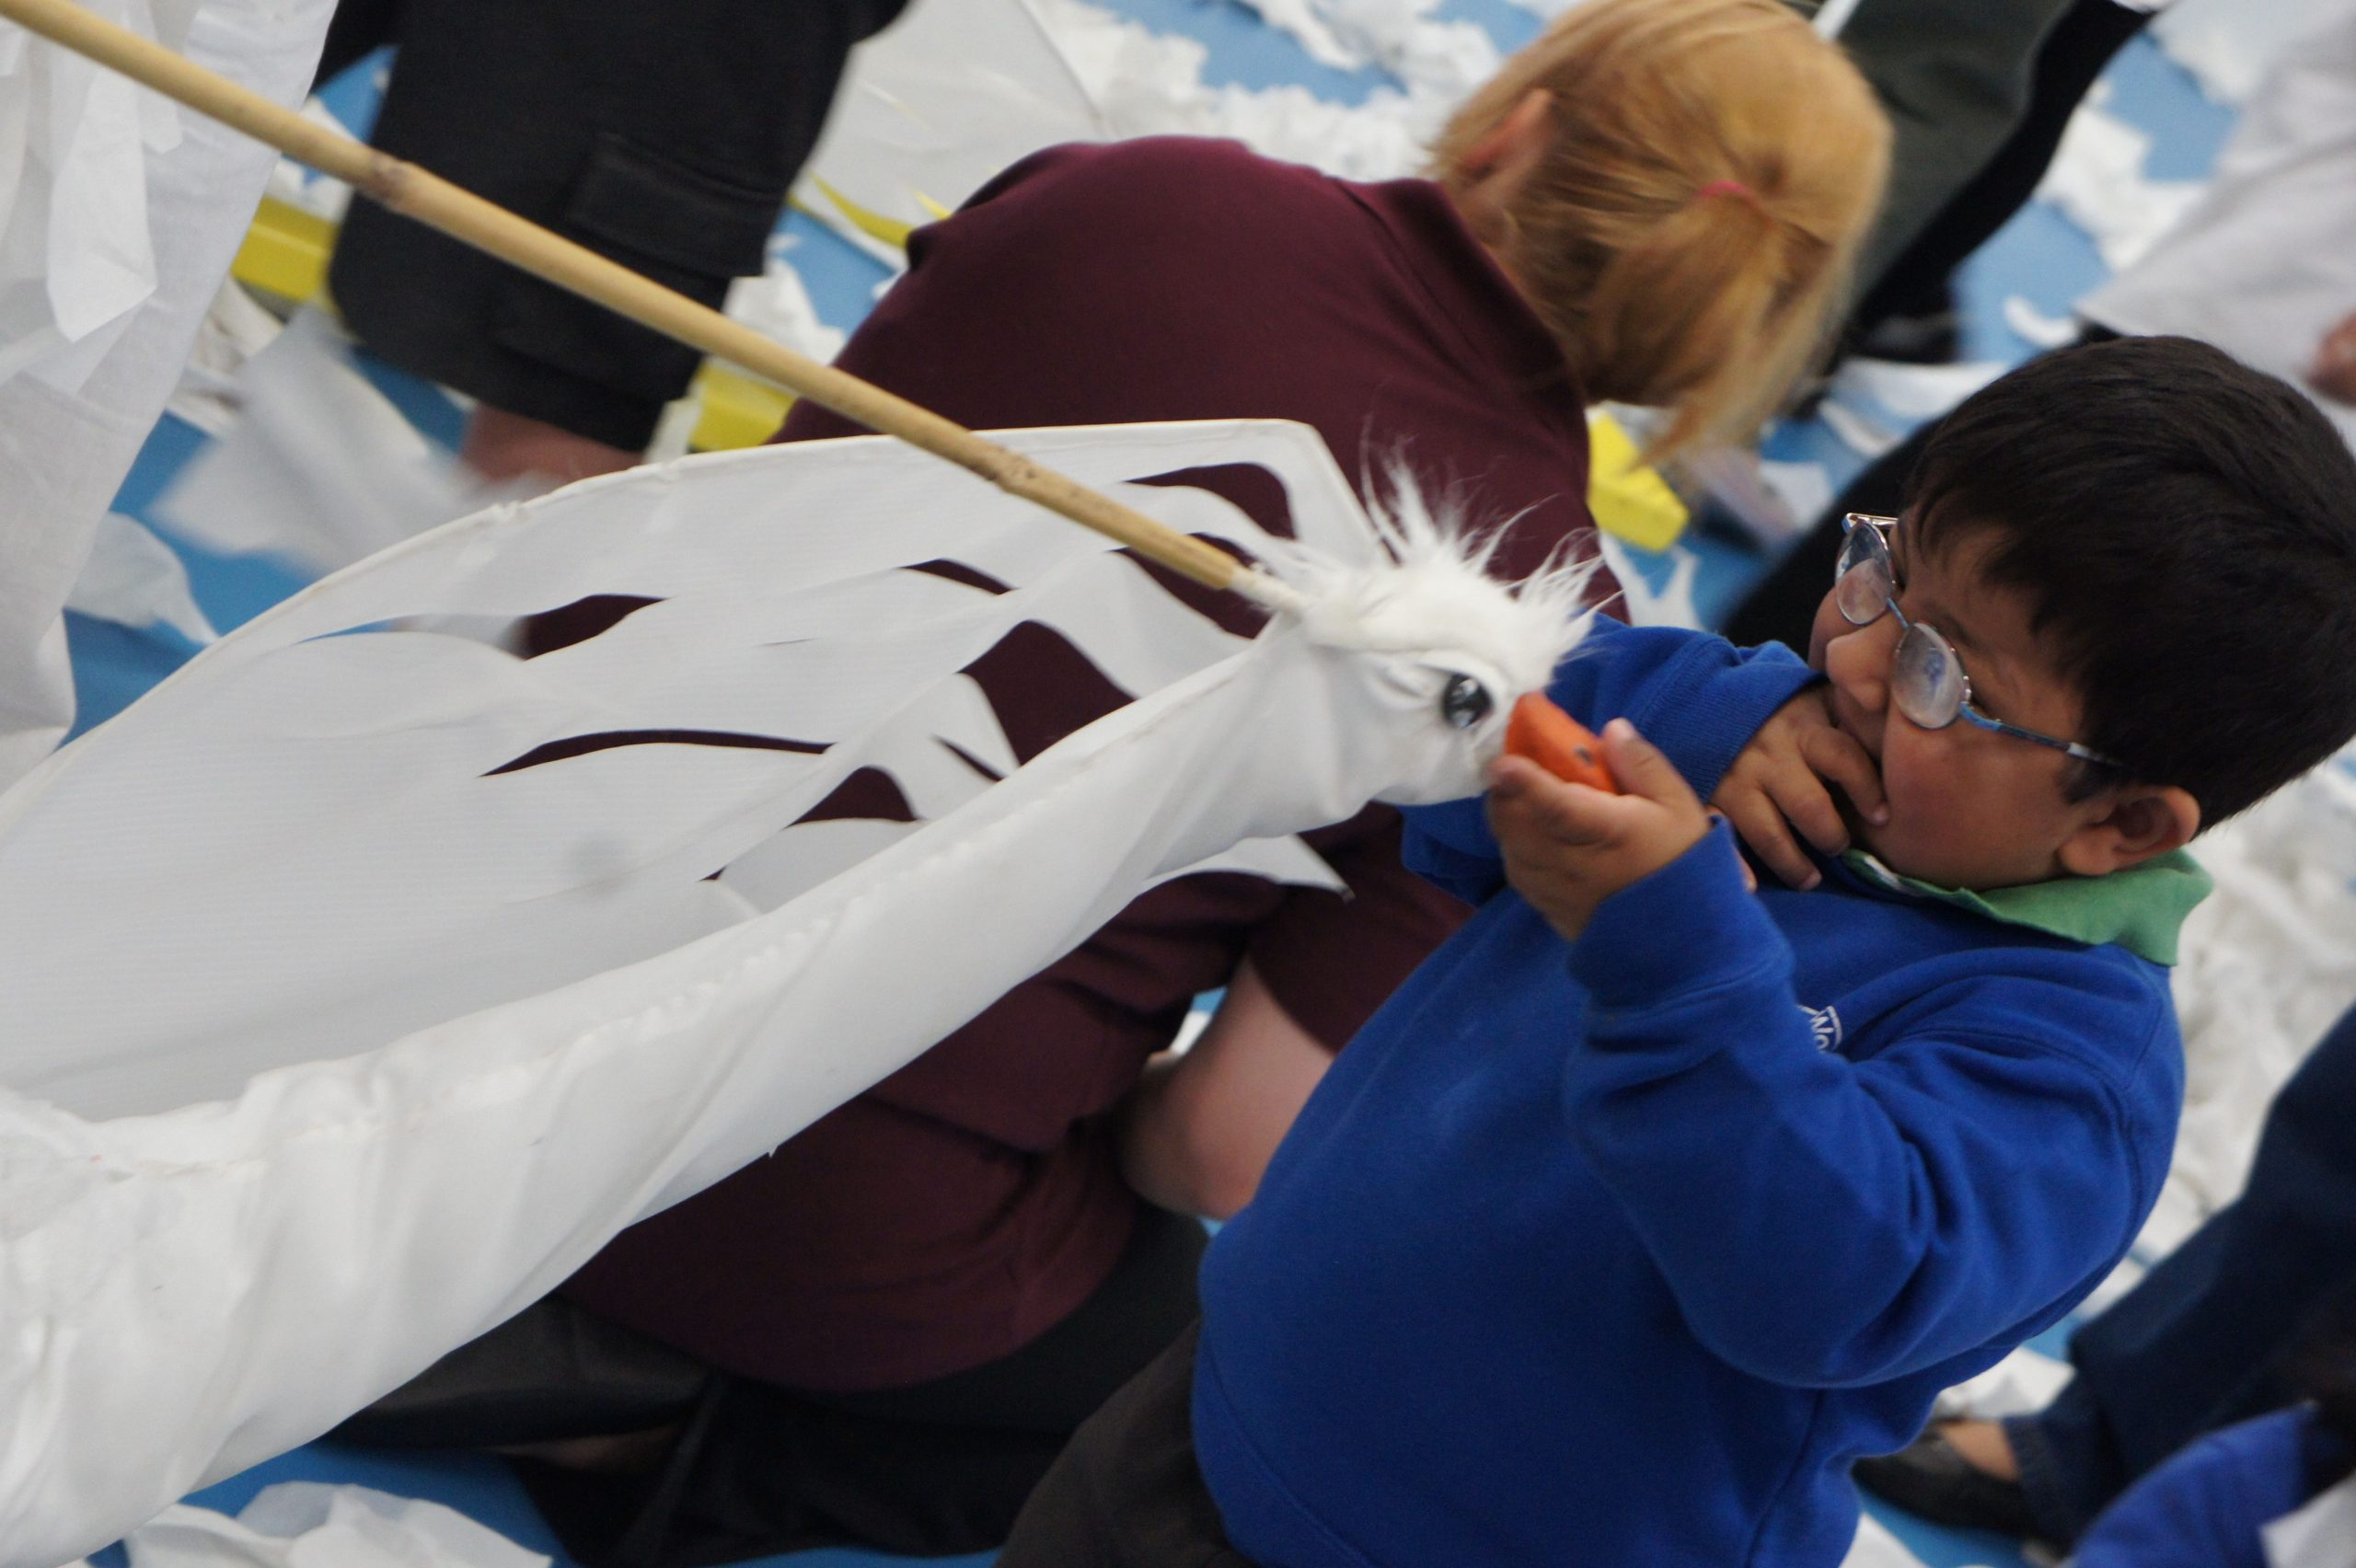 A little boy, asian, wearing glasses and wearing a blue school jumper holds out his hand to touch a swan puppet. In the background a white female with red hair and a red cardigan is kneeling down. The floor is covered in white tissue paper.